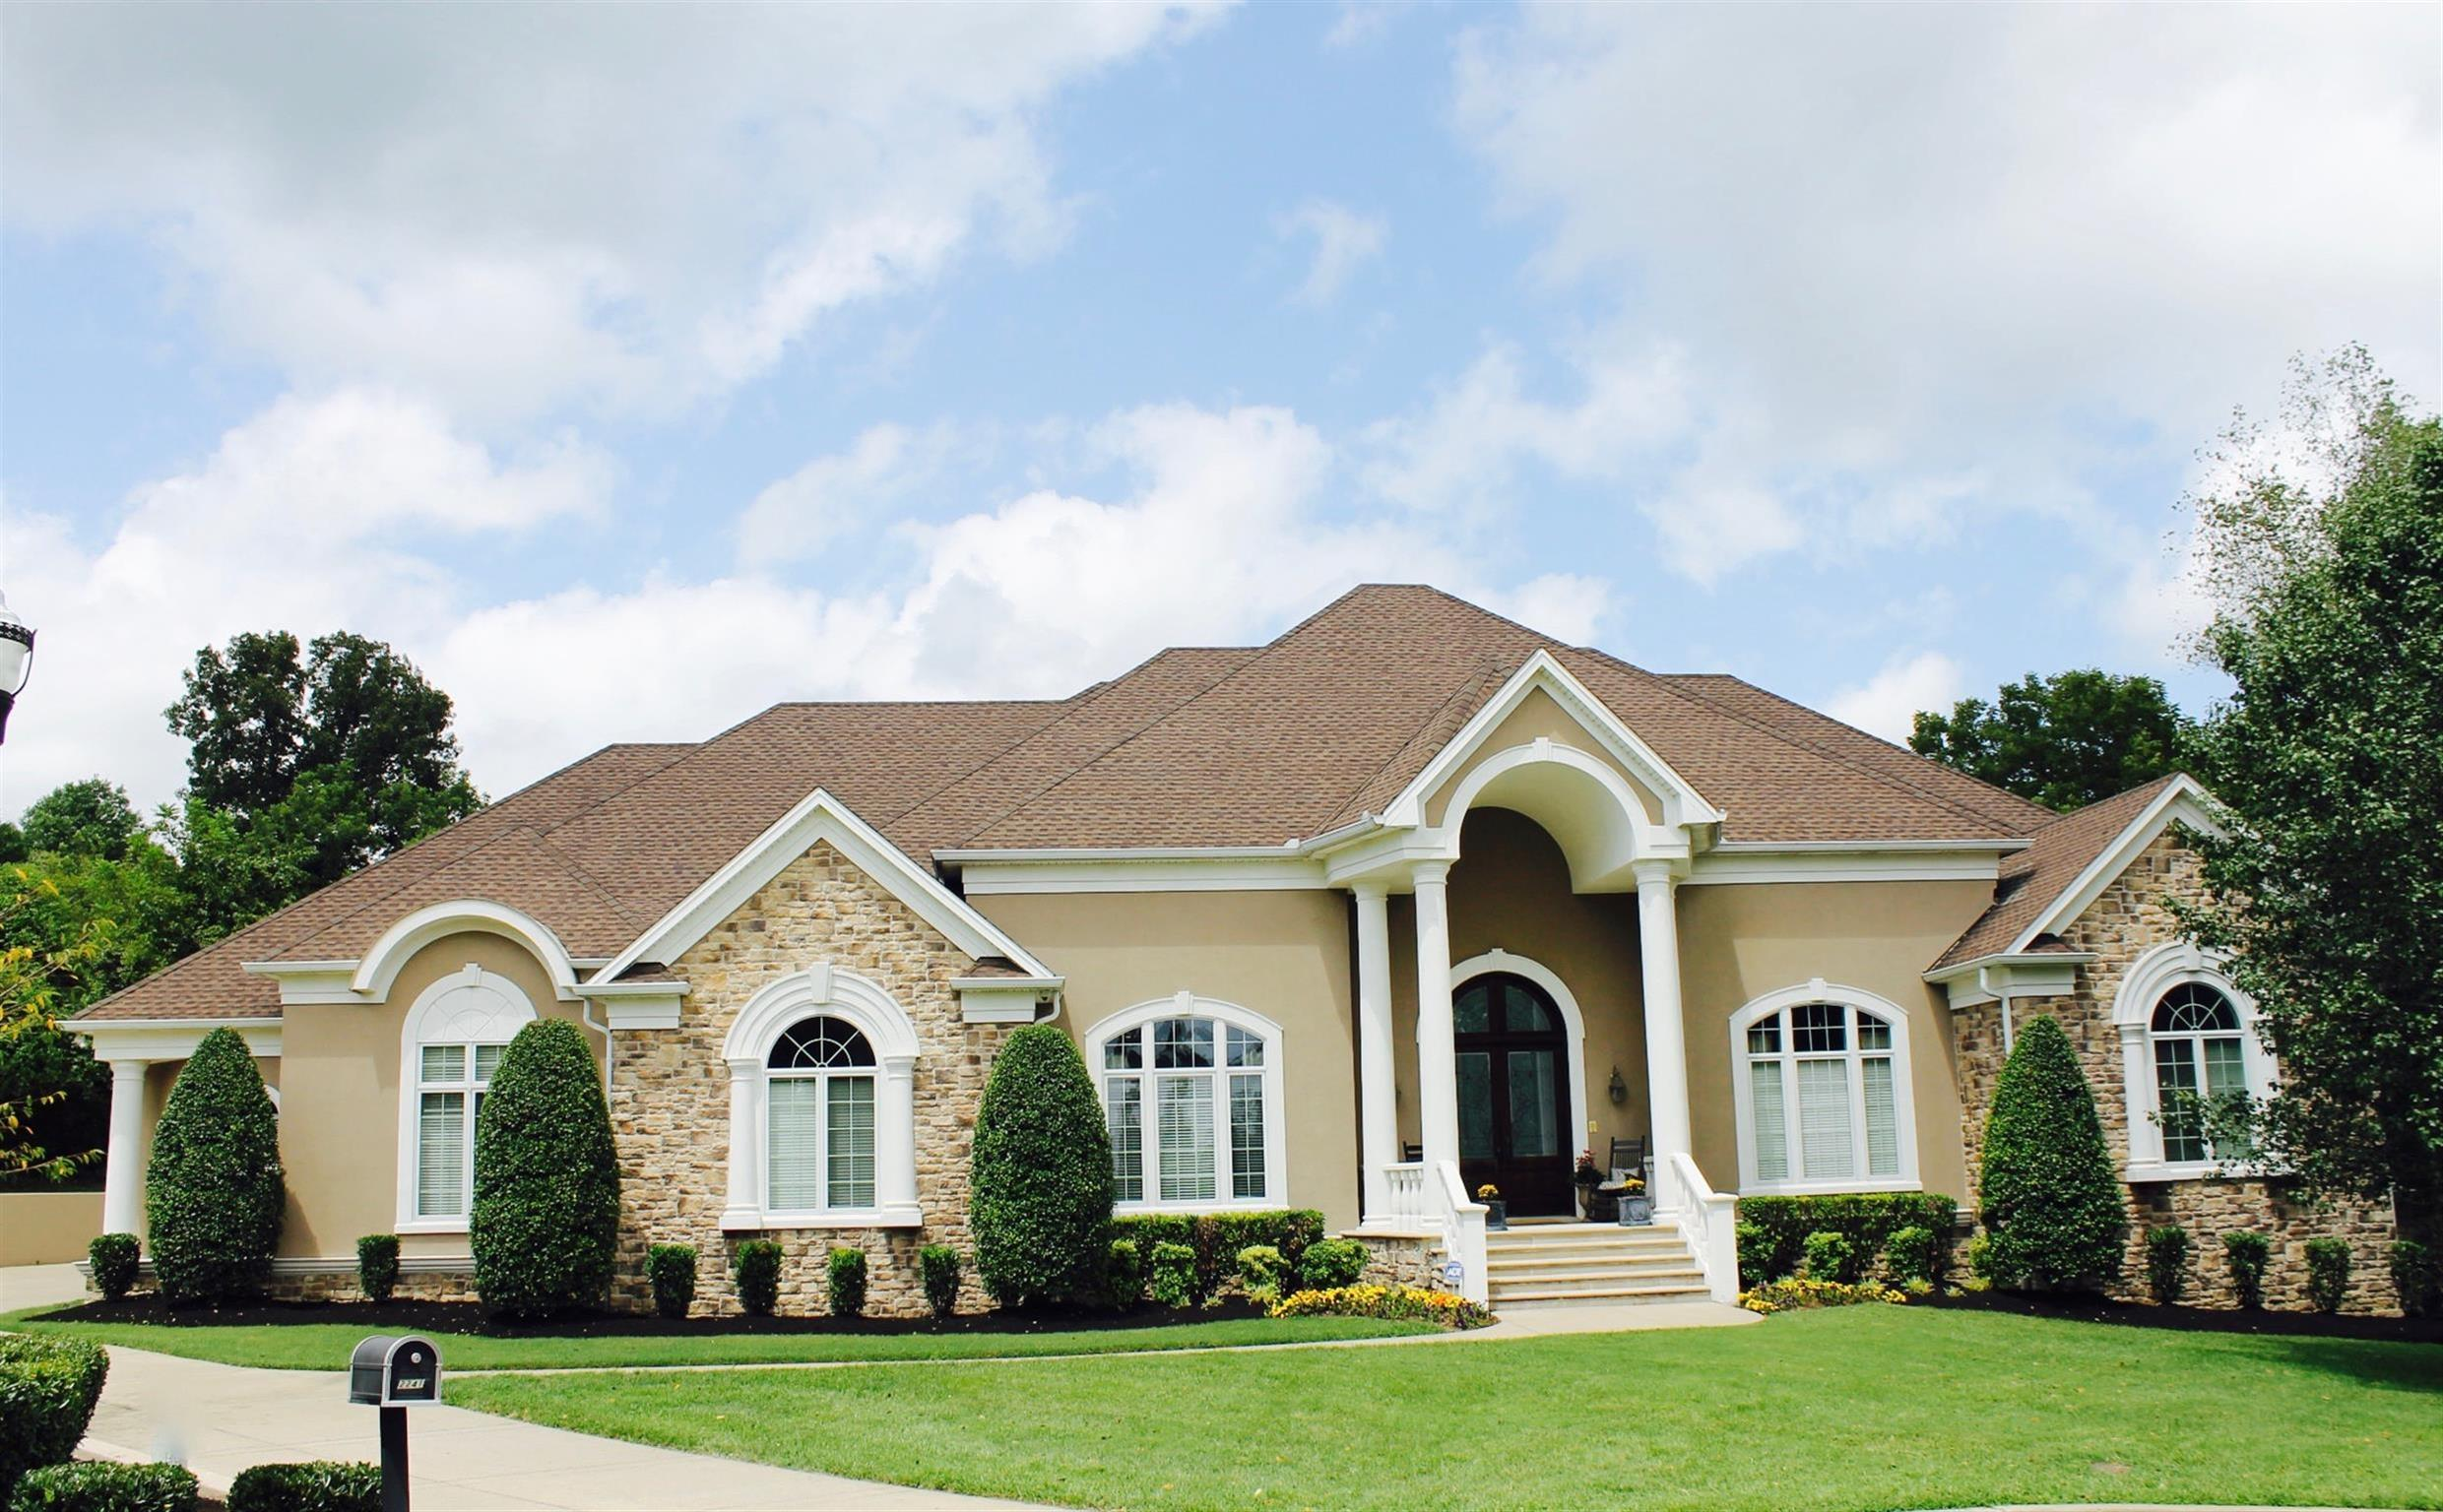 2241 Kayla Dr, Goodlettsville, Tennessee